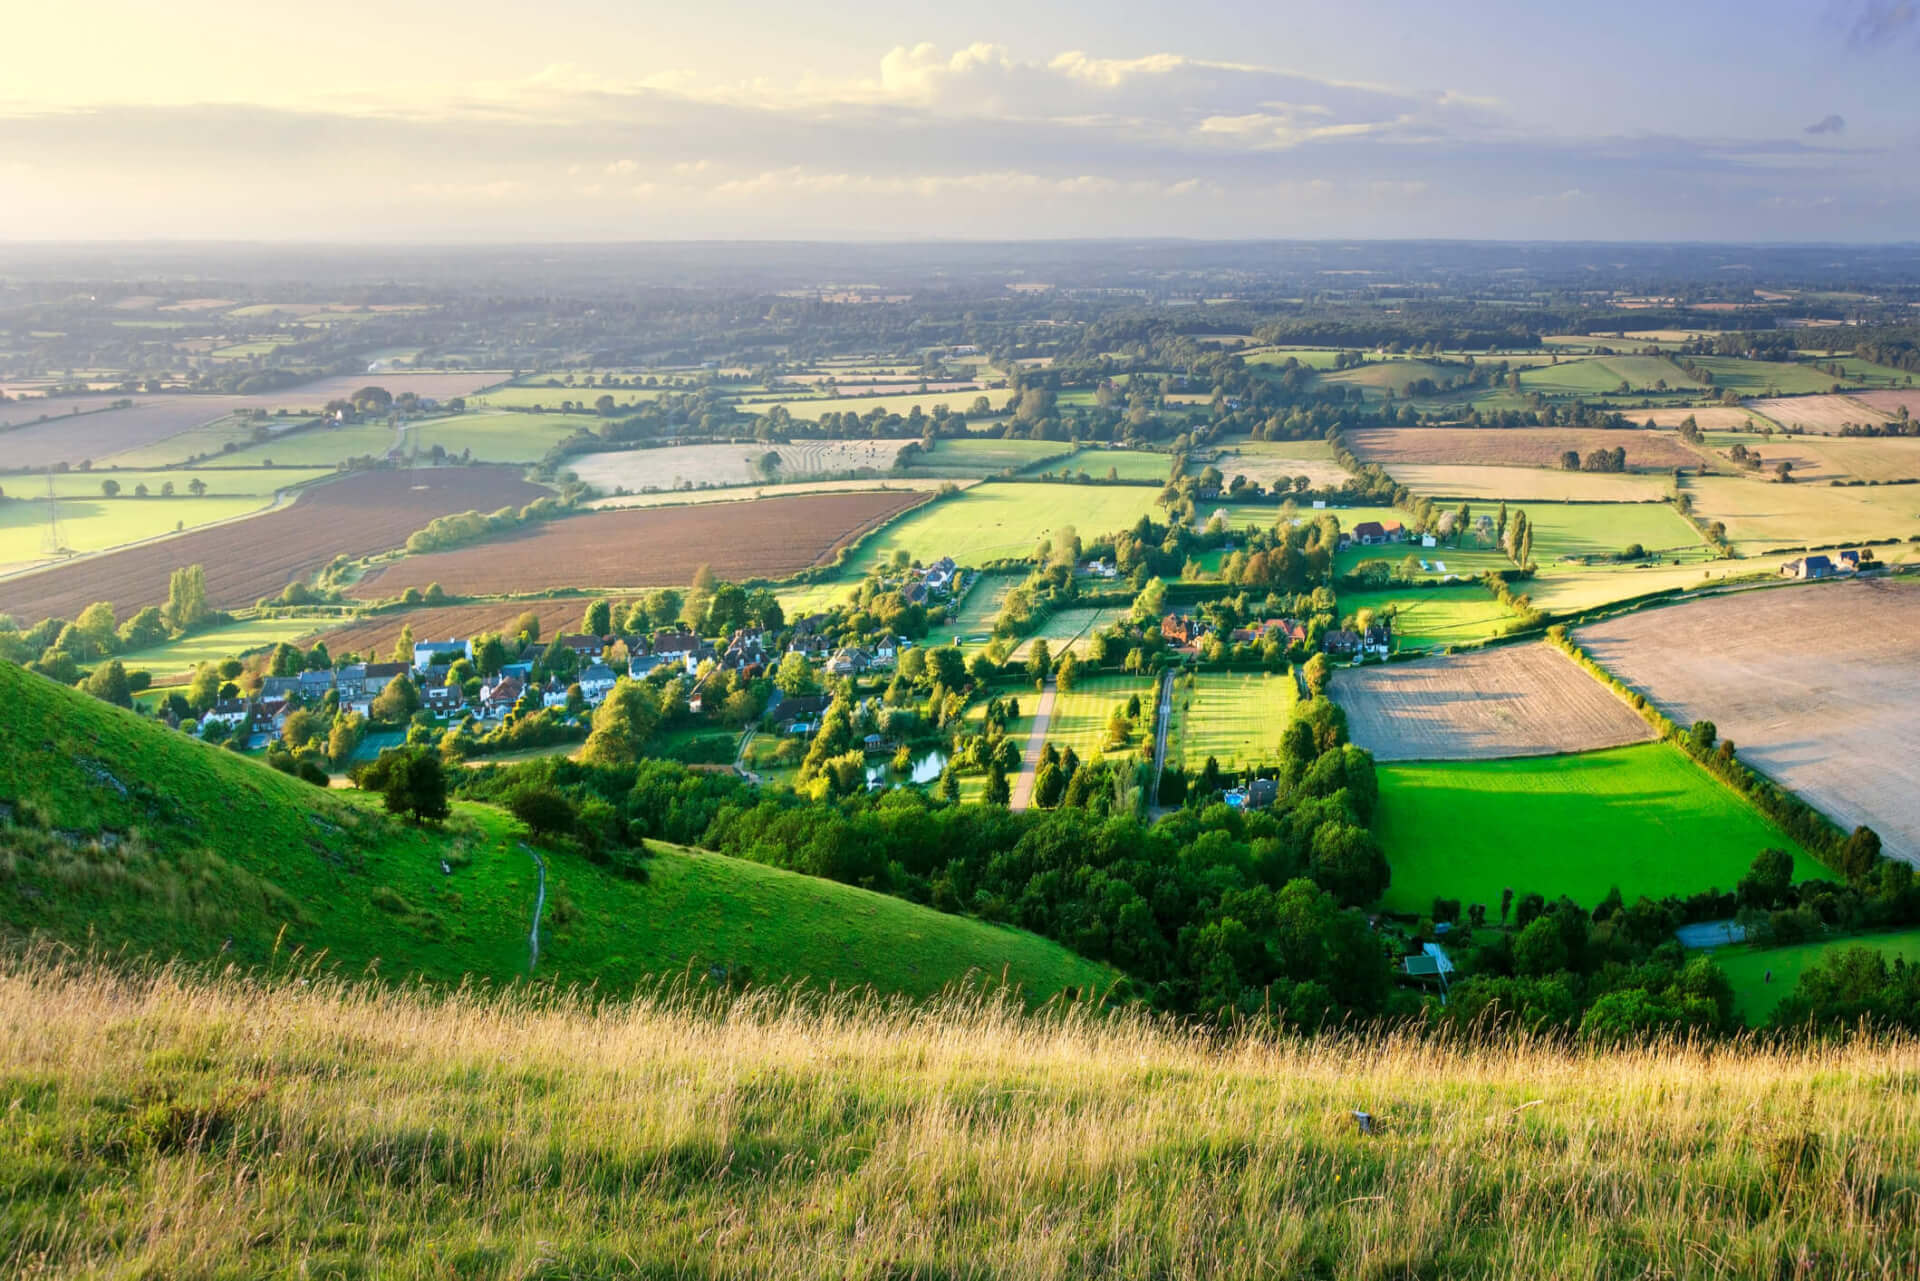 We need to talk about the Green Belt